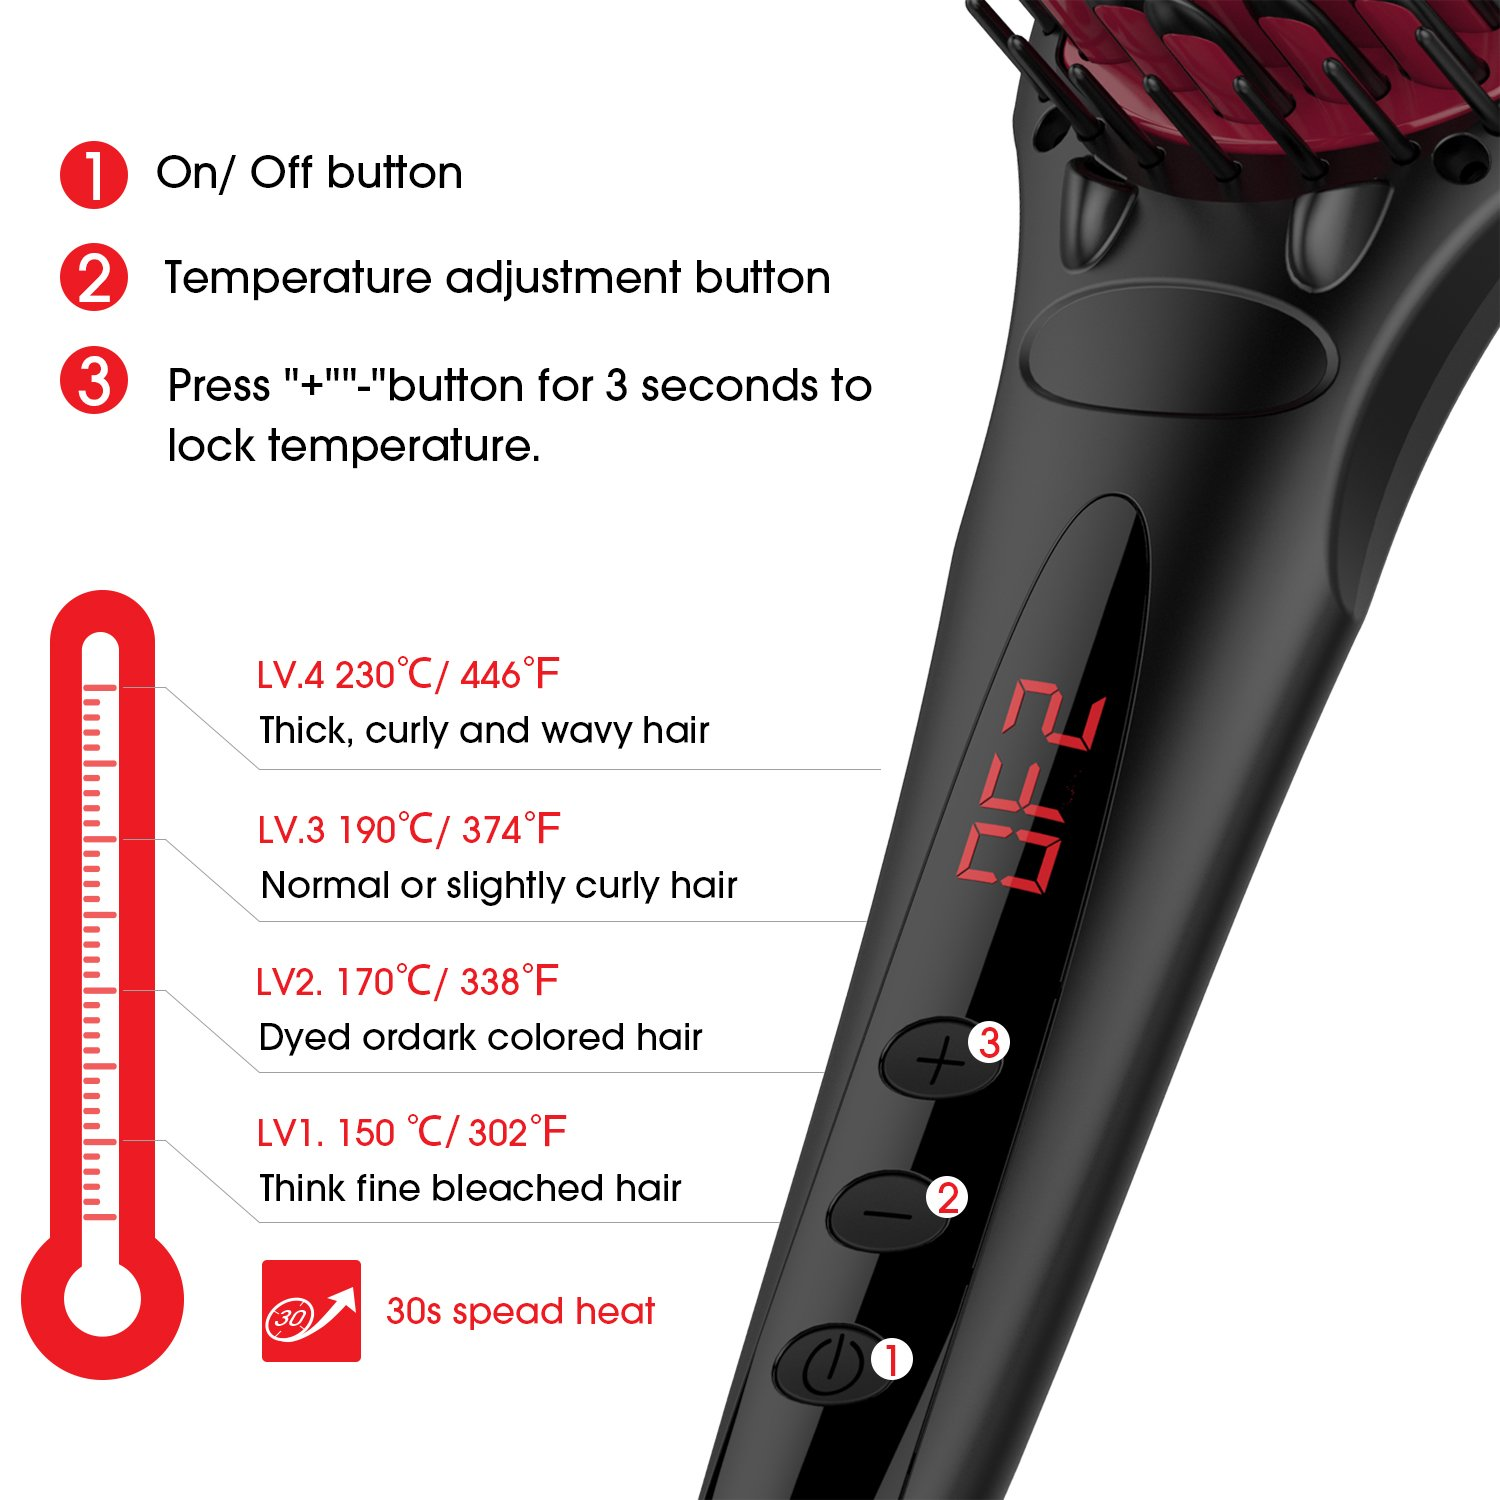 Enhanced Hair Straightener Brush by MiroPure, 2-in-1 Ionic Straightening Brush with Anti-Scald Feature, Auto Temperature Lock and Auto-off Function (Black) by MiroPure (Image #4)